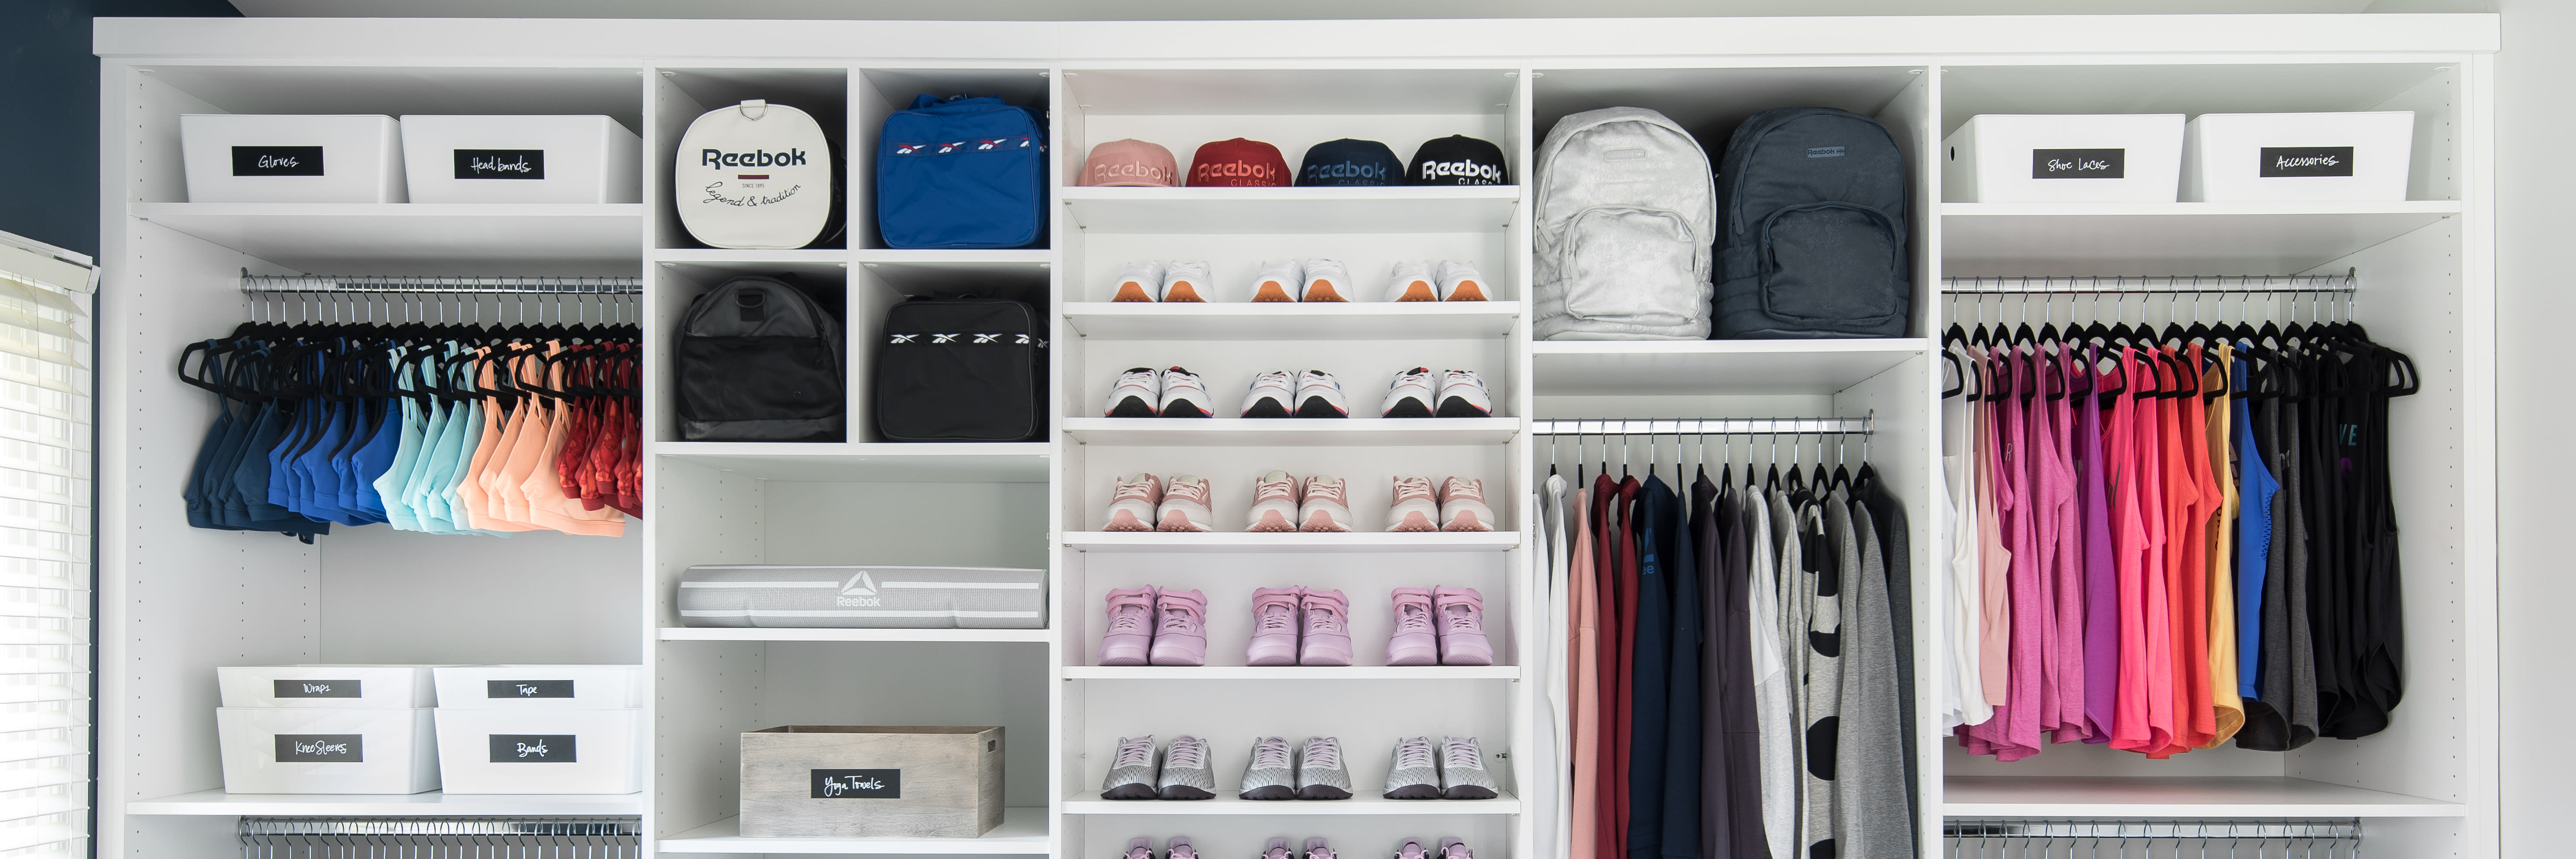 642597a14ec6 This Advice Will Keep Your Workout Wardrobe Organized